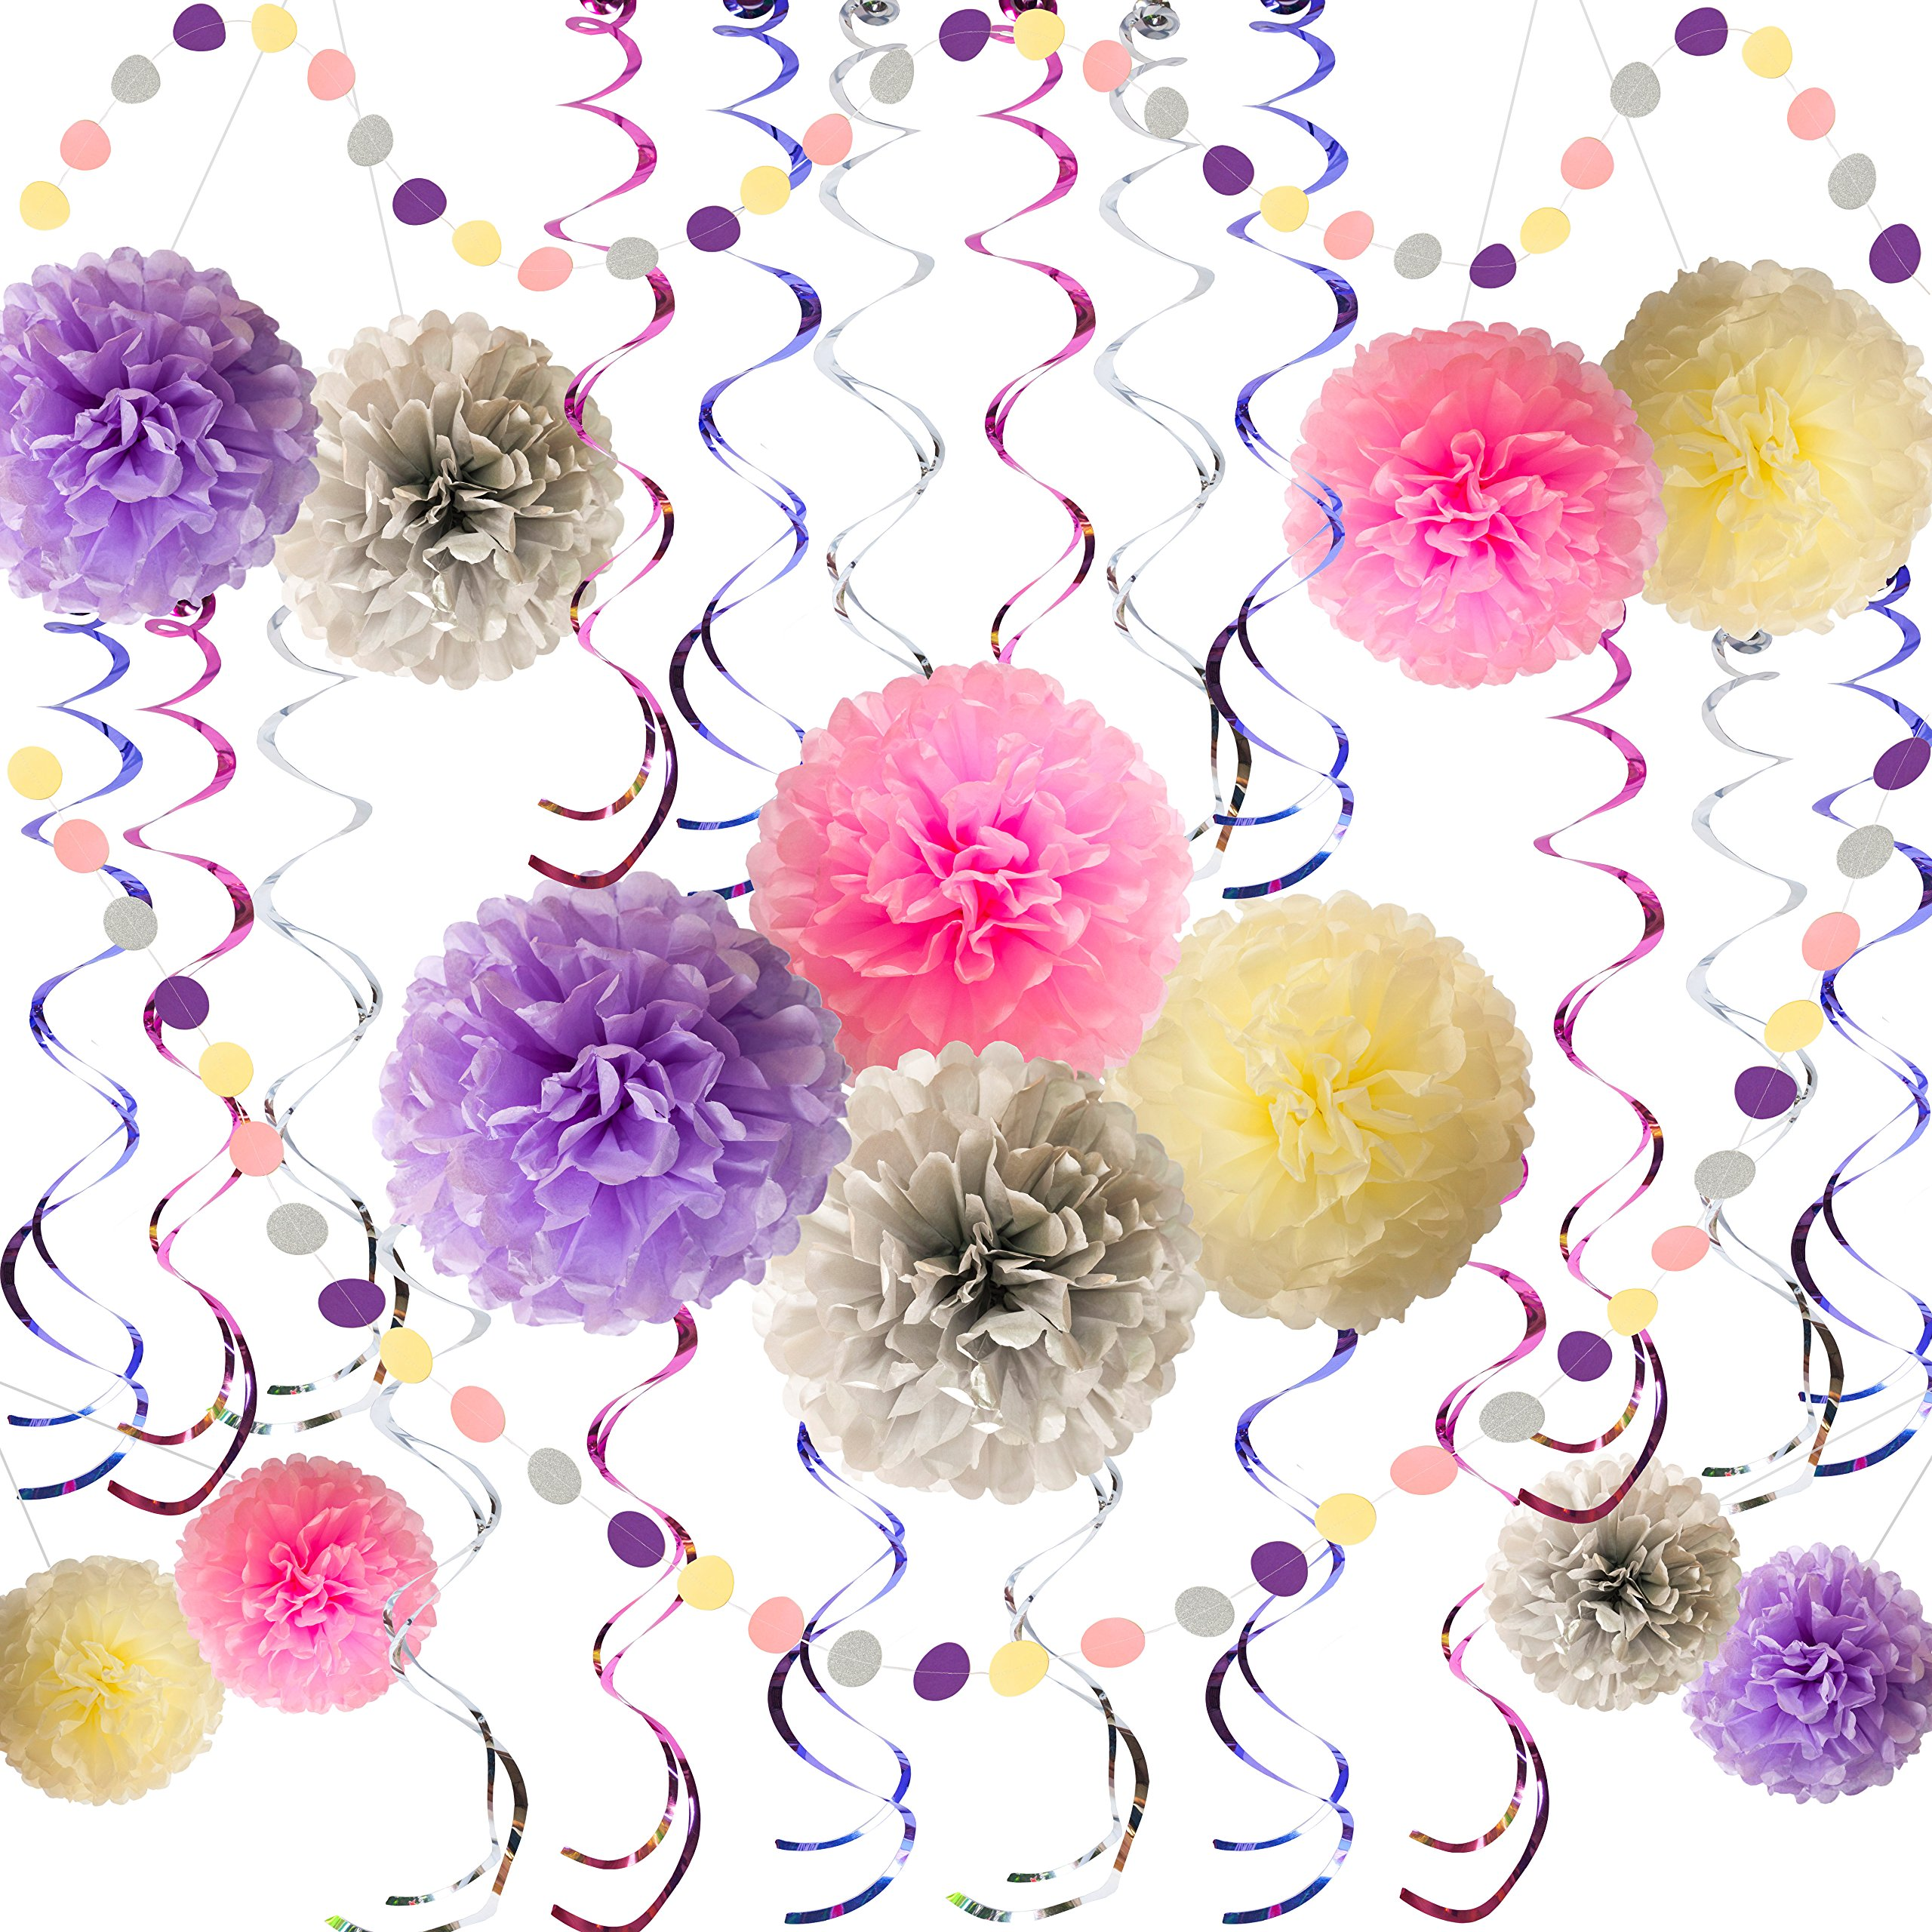 Party Decorations Kit for Girl 32 Pcs – Pink Silver Purple Cream Tissue Paper Pom Poms Flowers 12 Pcs, Circle Dot Garlands 2 Packs, Hanging Swirls 18 Pcs - Birthday Supplies for any Girls Party Theme